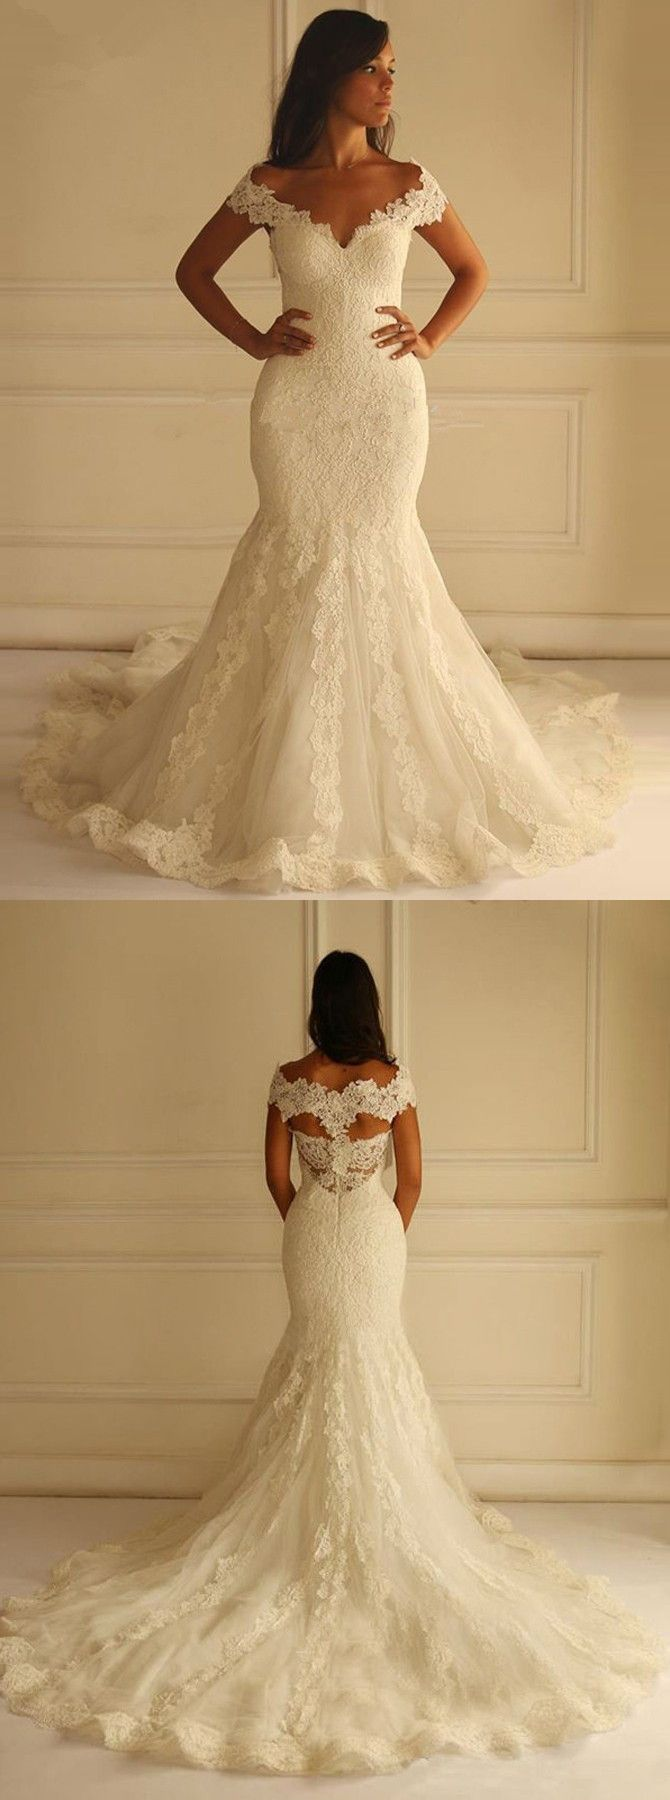 white lace wedding dress white wedding dresses Special Off Shoulder Court Train Short Sleeves Mermaid Lace Wedding Dress with Appliques